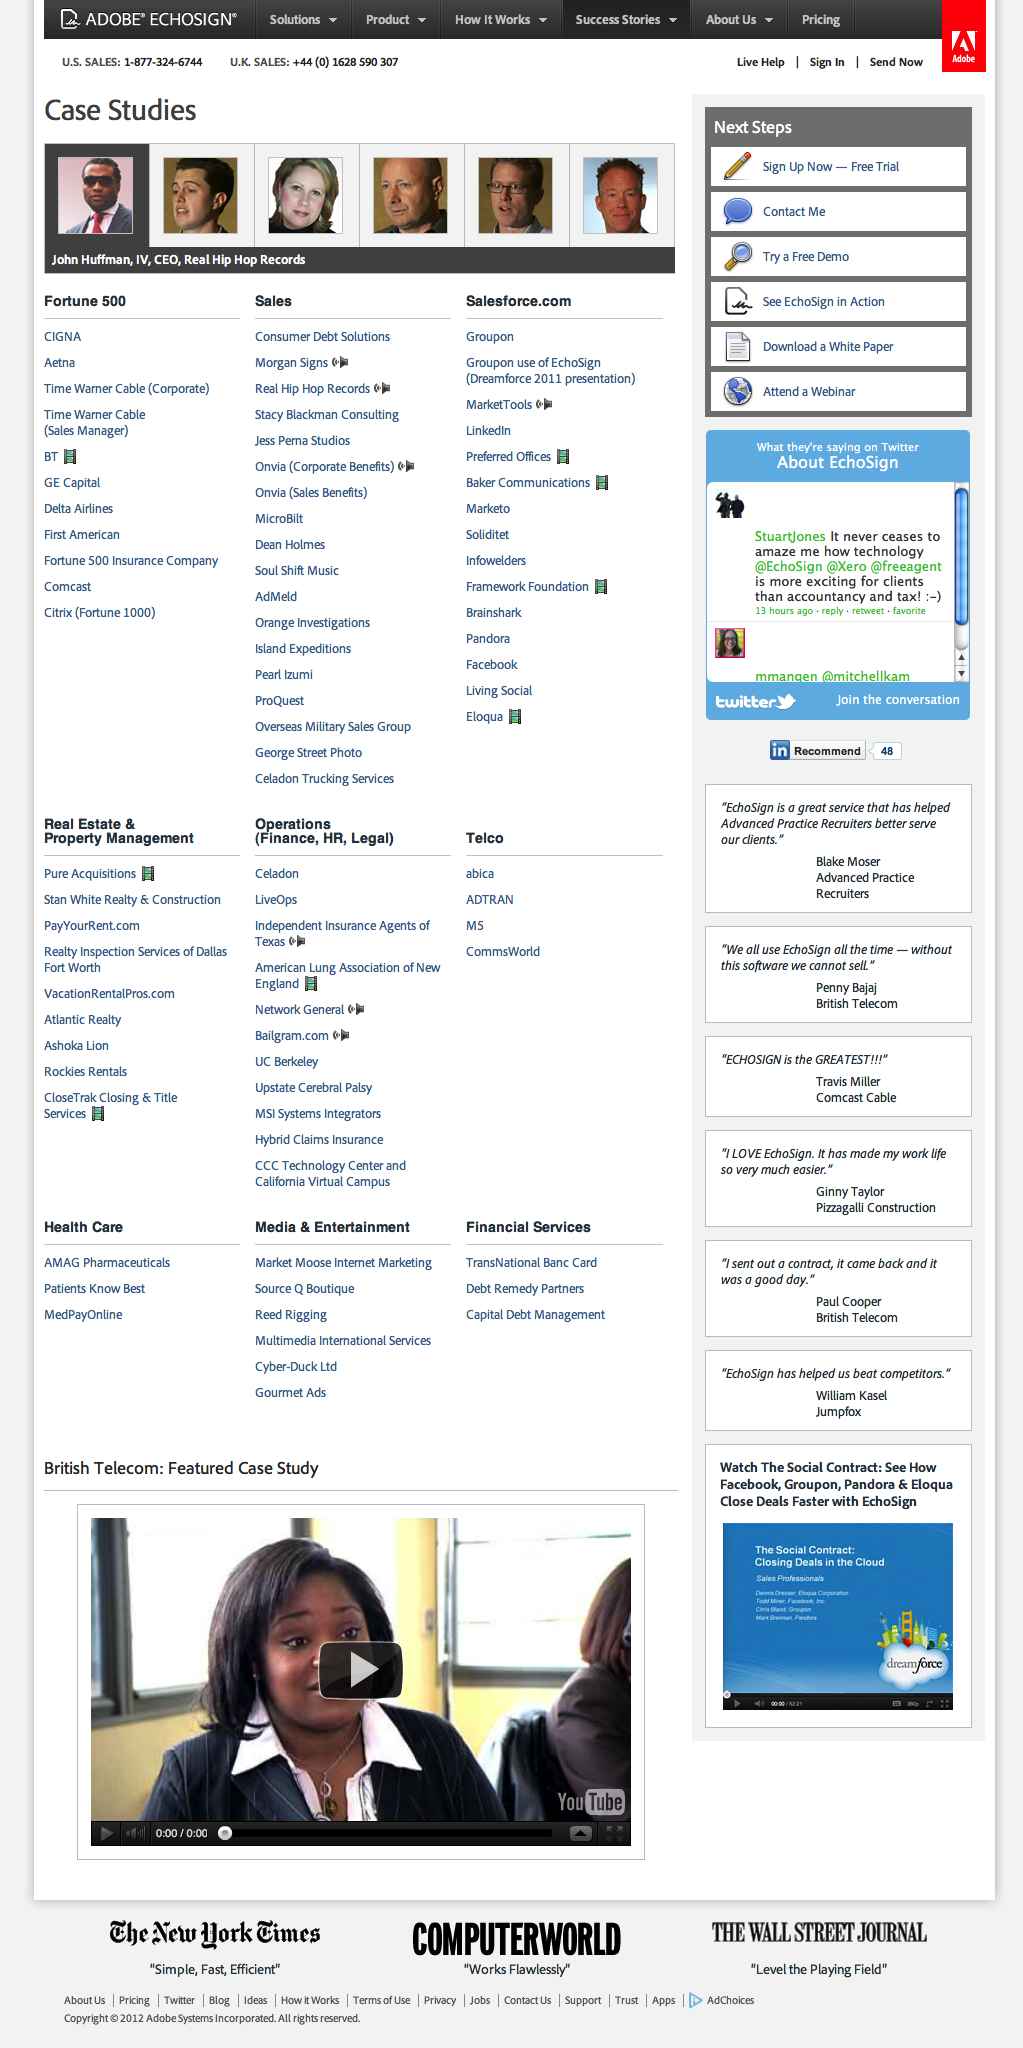 image showing page design after redesign